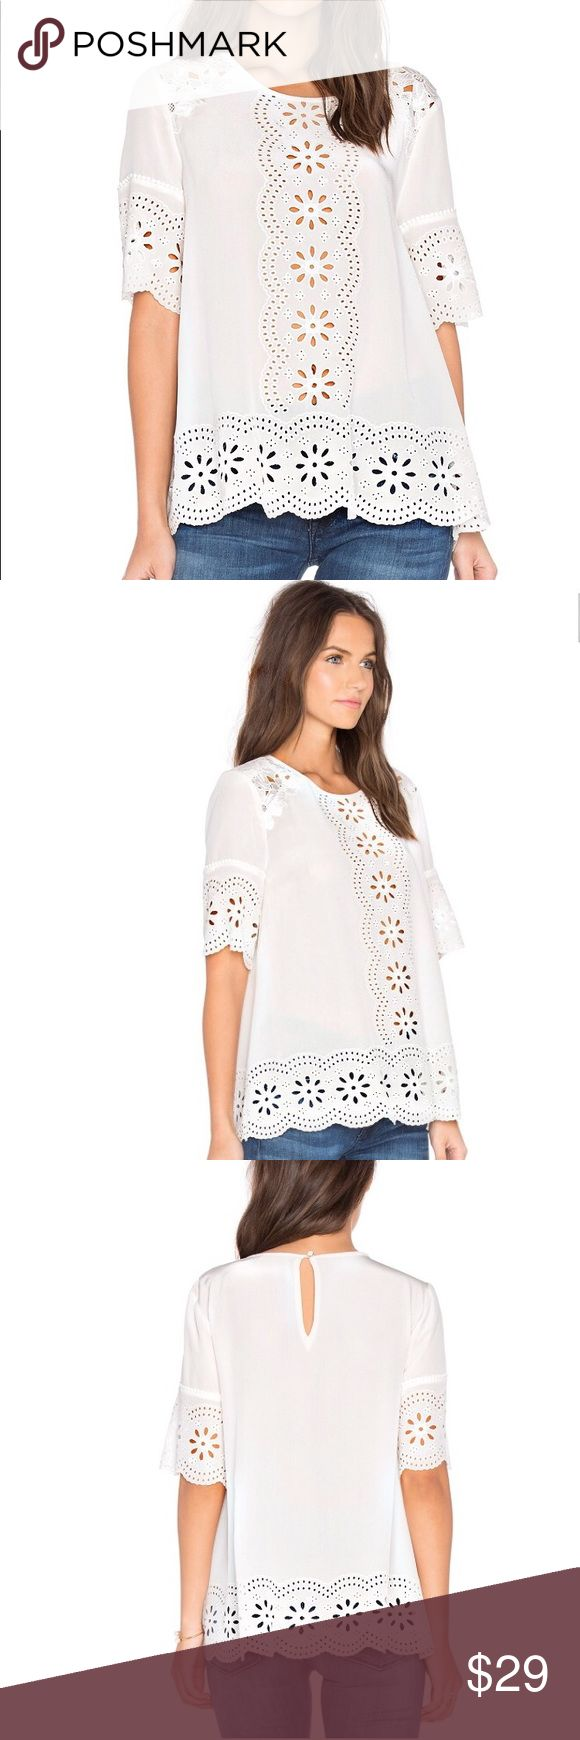 Kate Spade Eyelet & Embroidered Daisy Swing Top Kate Spade Eyelet & Embroidered Daisy Swing Top   Condition: preowned but still in great condition Color: Ivory Size: S kate spade Tops